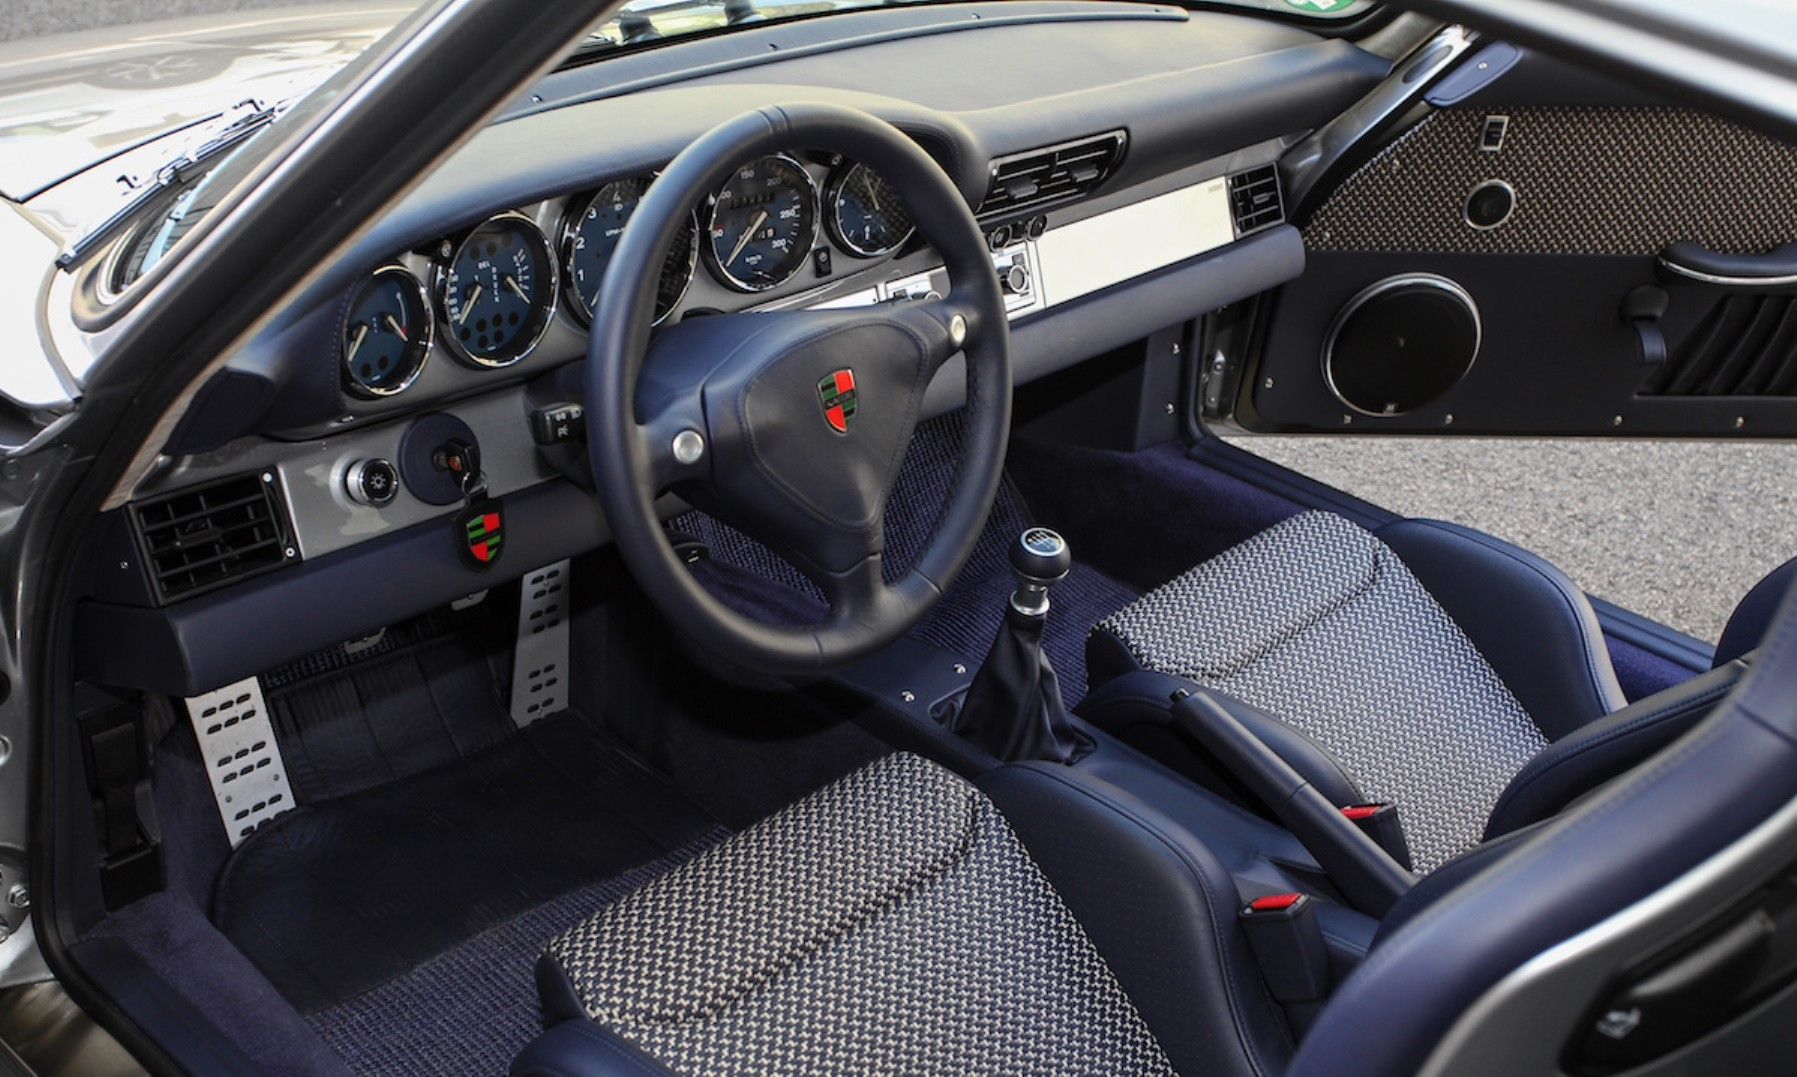 Kaege Retro Porsche interior facia